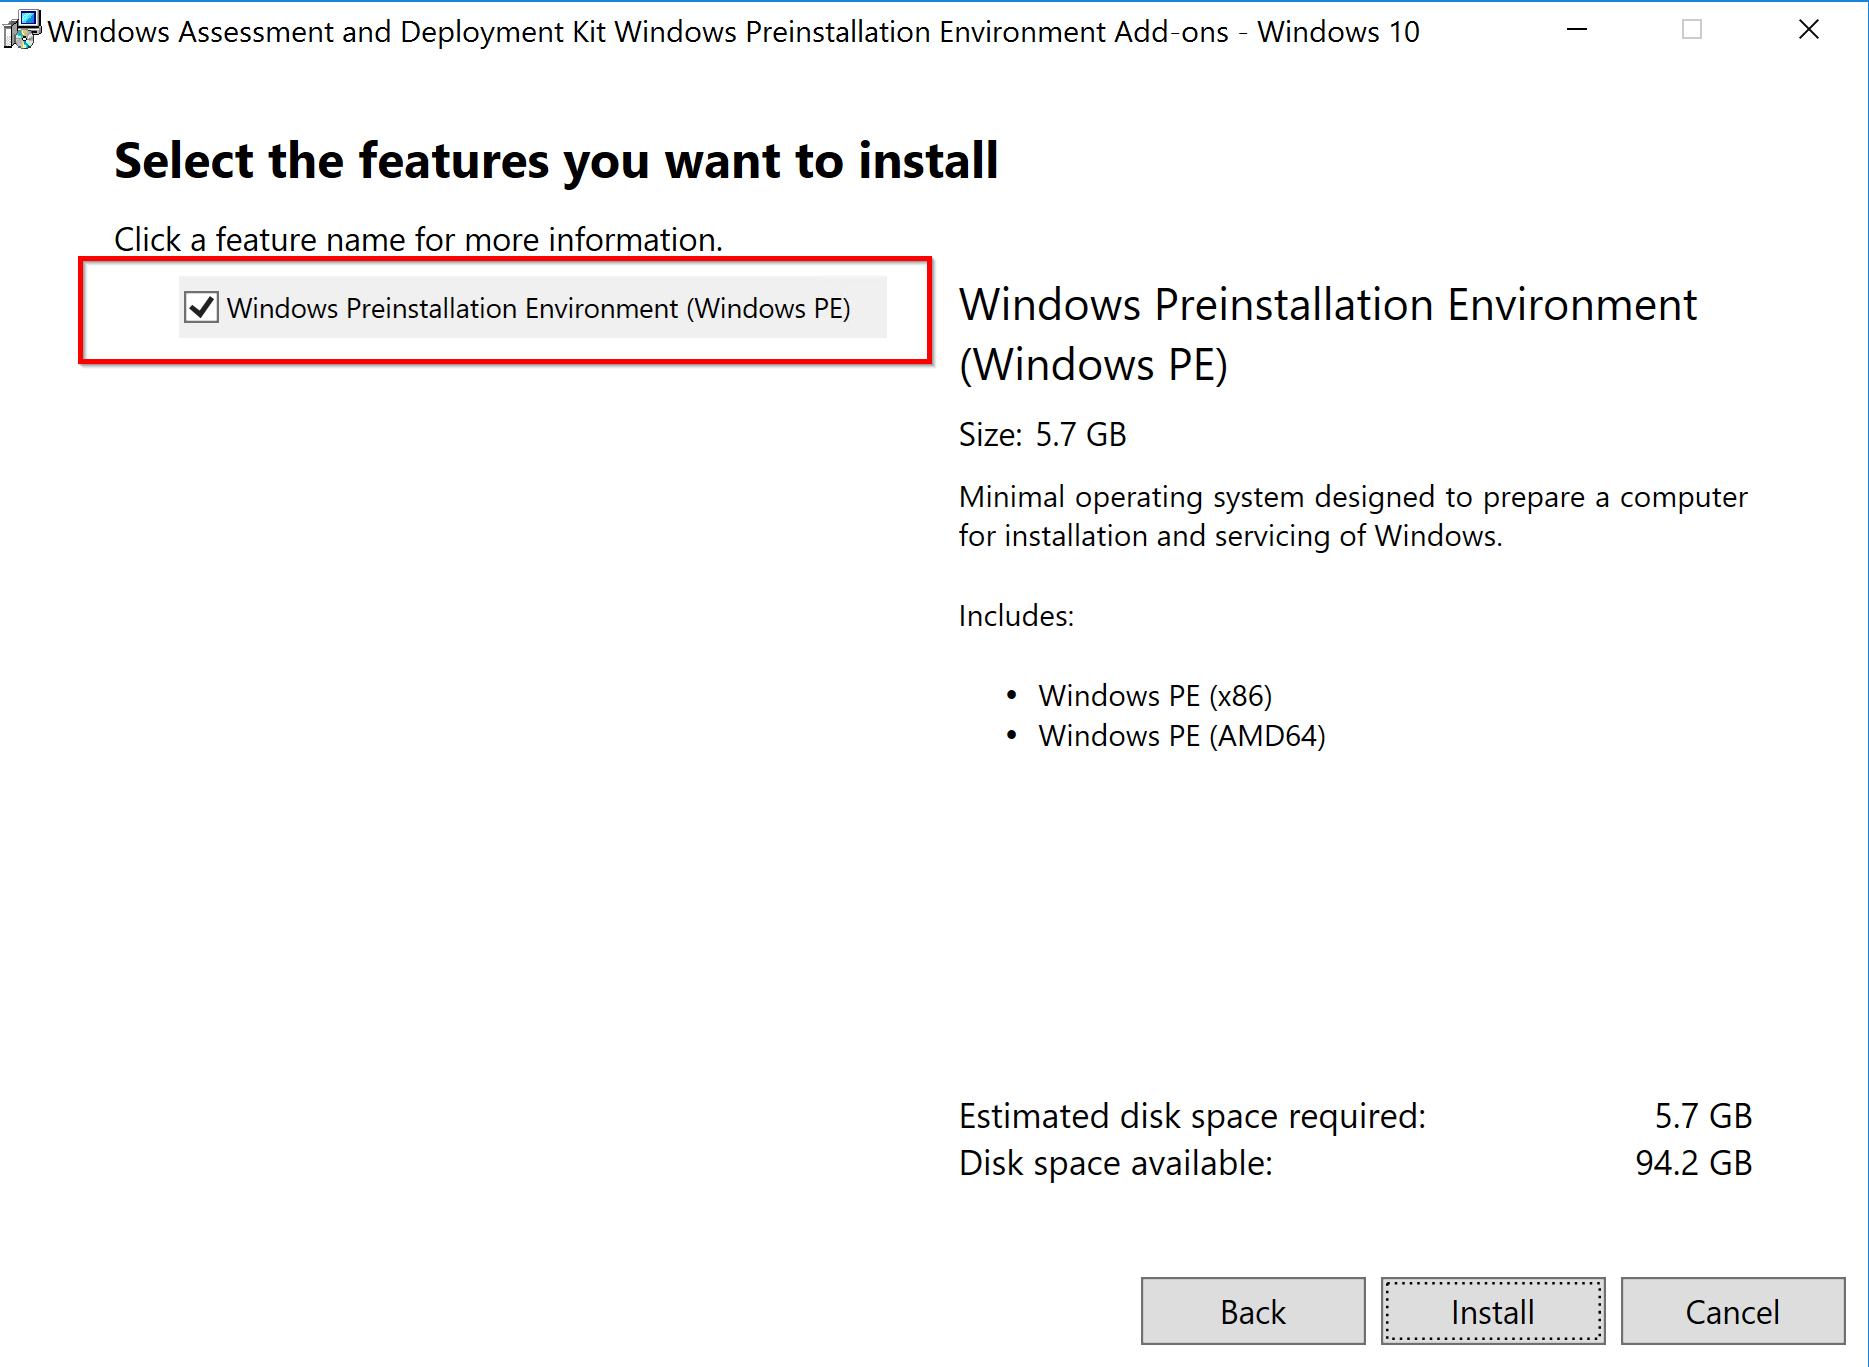 Installation of ADK for Windows 10 (version 1809)